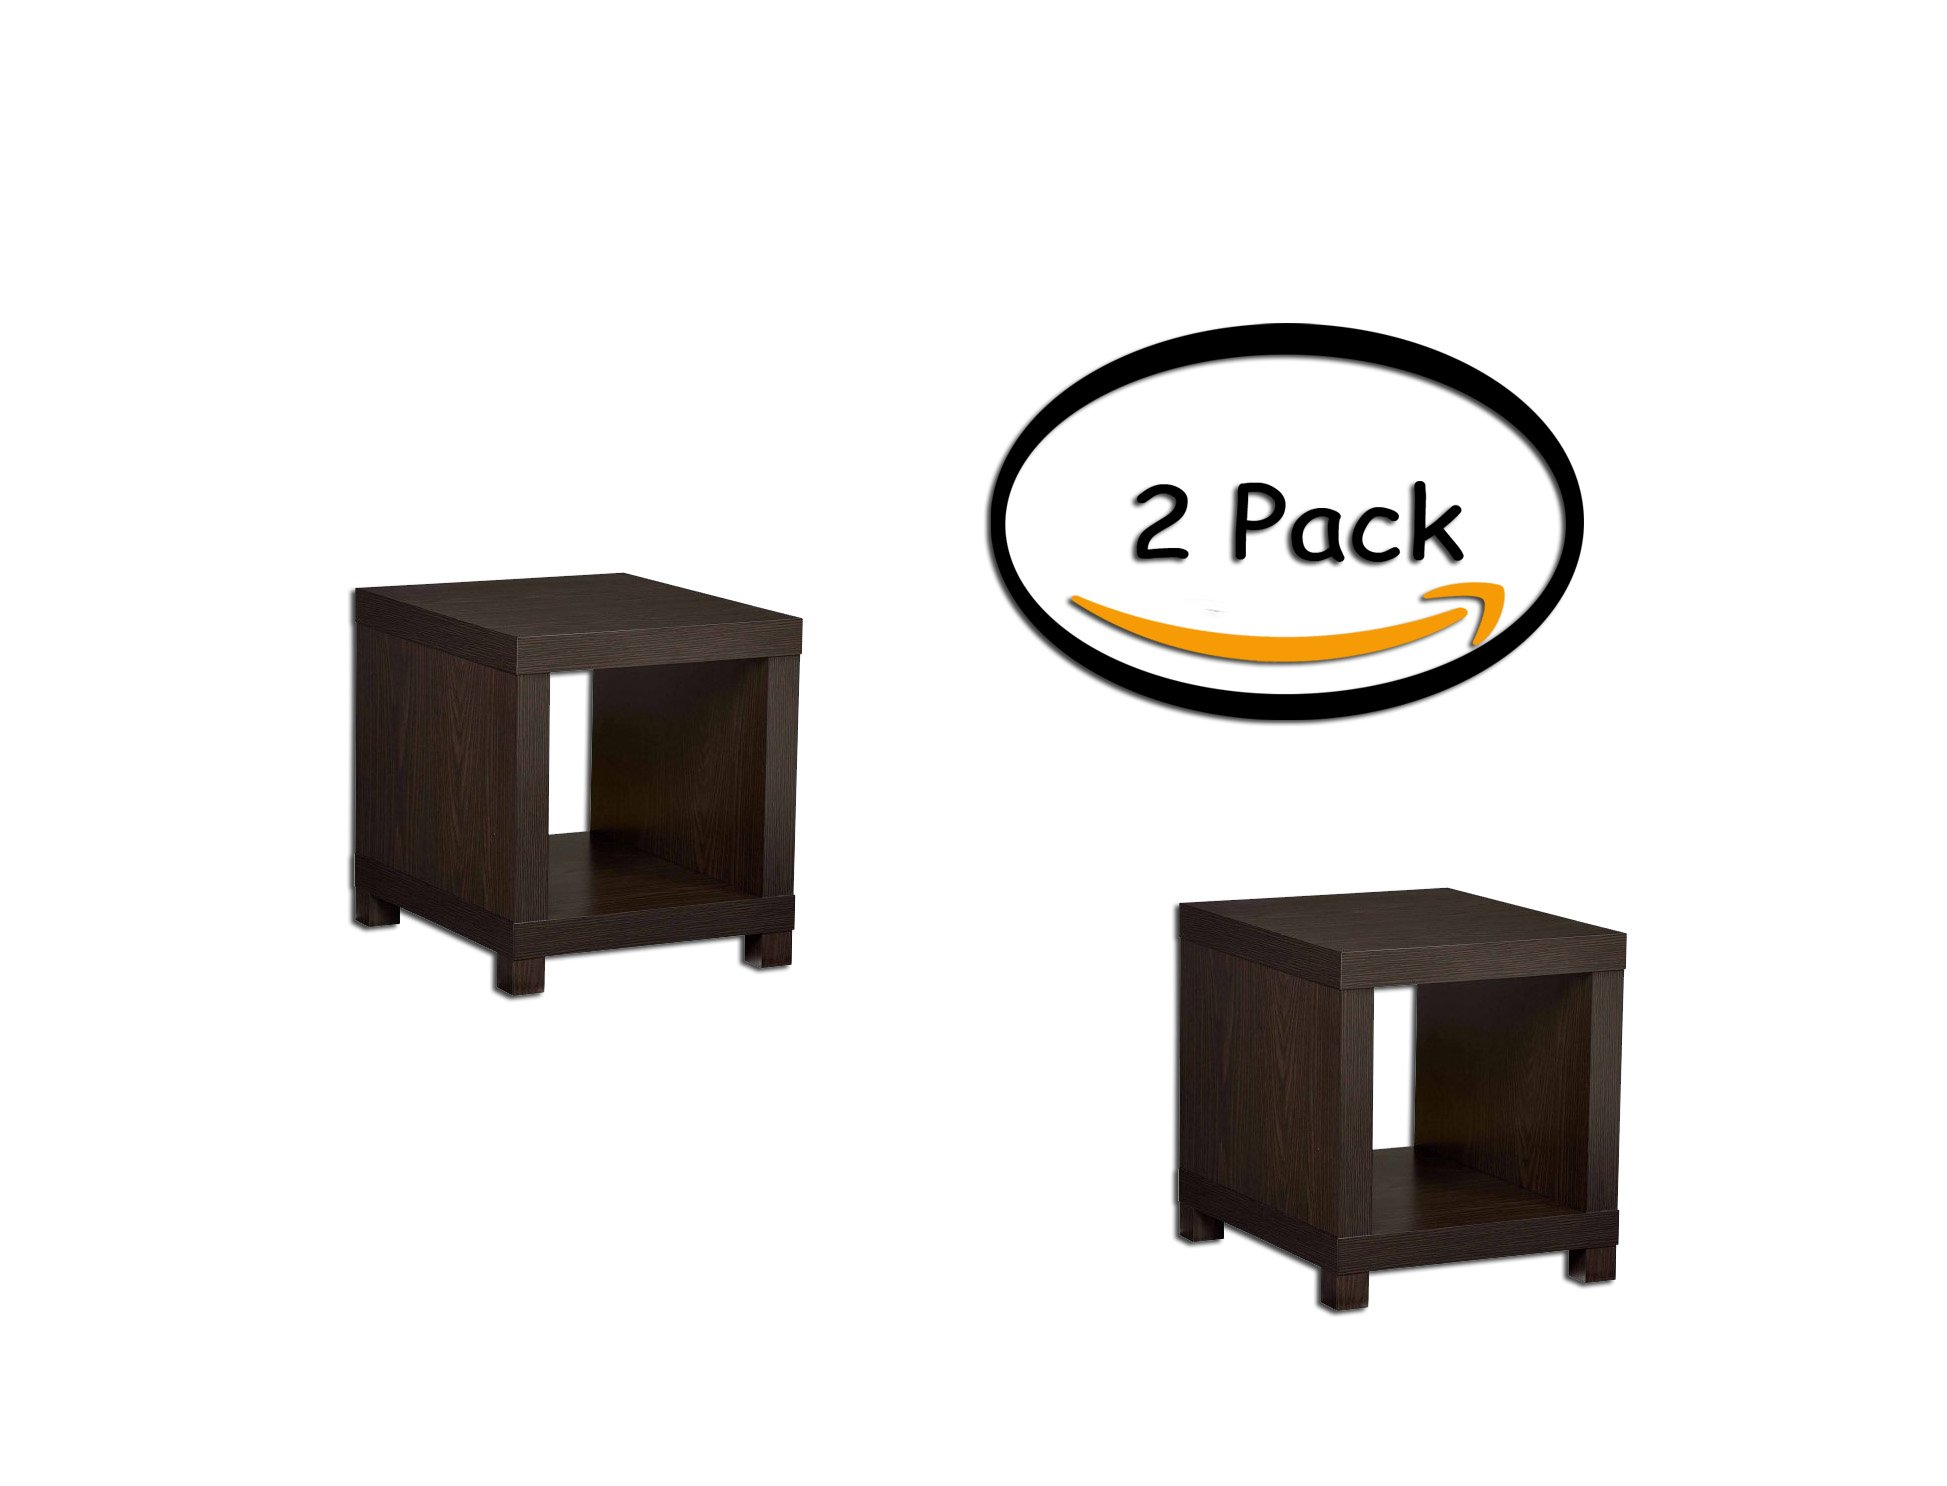 PACK OF 2 - Better Homes and Gardens Accent Table, Multiple Colors, Size:, Actual Color: Espresso